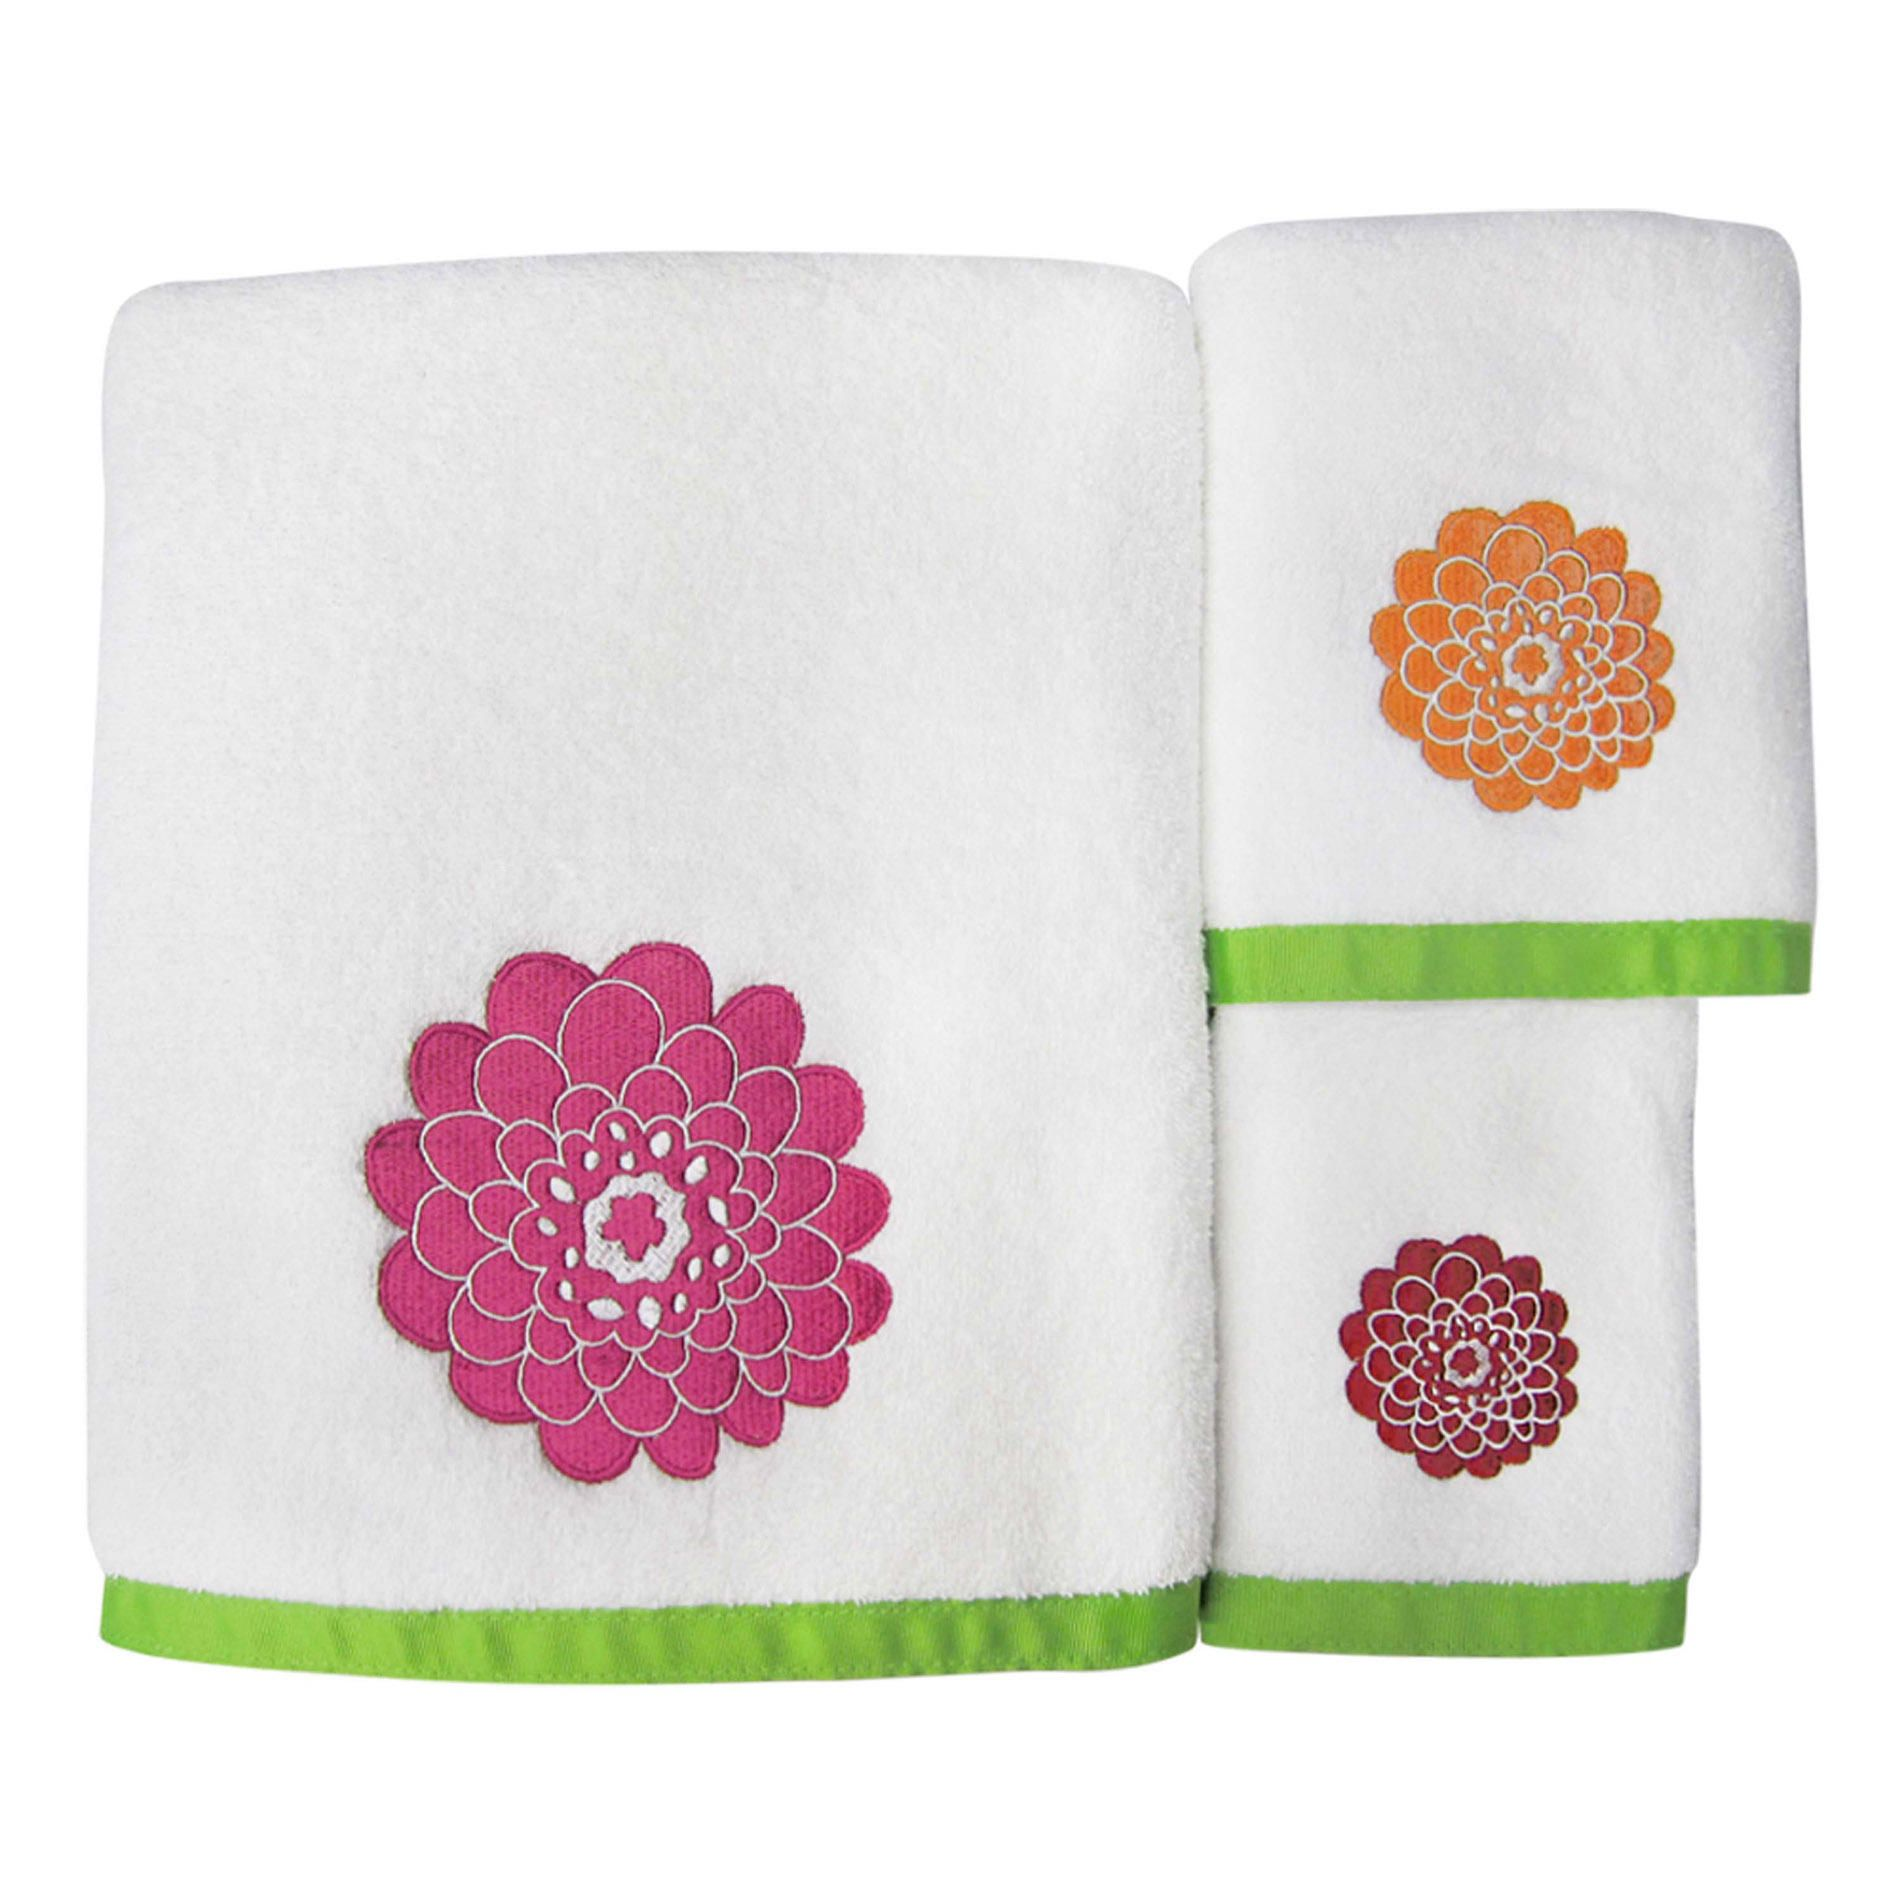 Allure home creation costella pink bath towel set big flowers